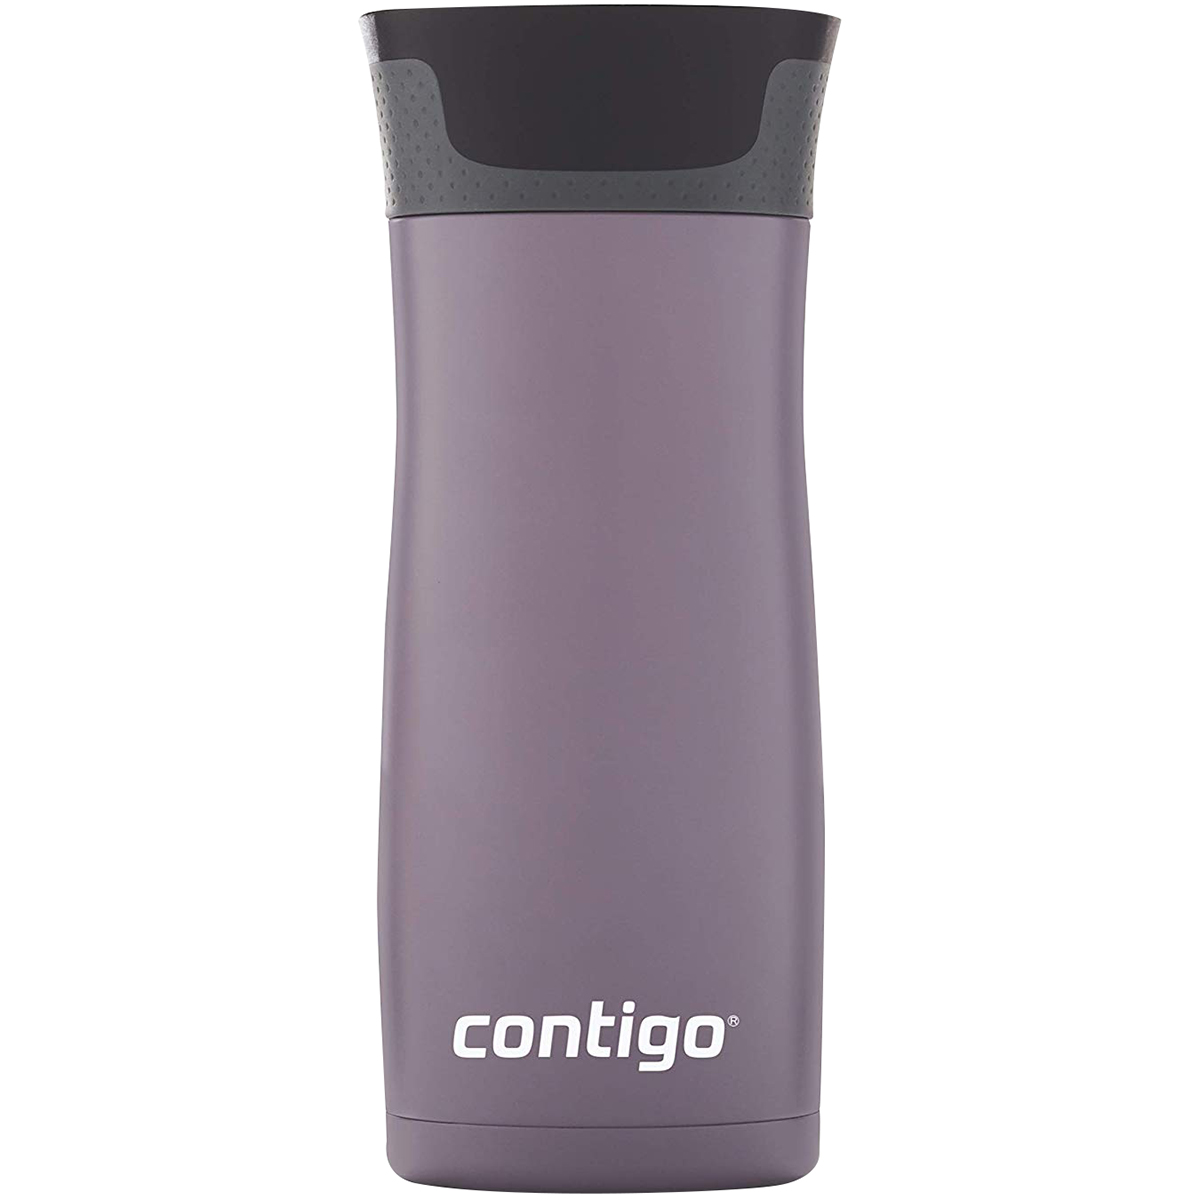 Contigo-16-oz-West-Loop-2-0-AutoSeal-Insulated-Stainless-Steel-Travel-Mug miniatura 22